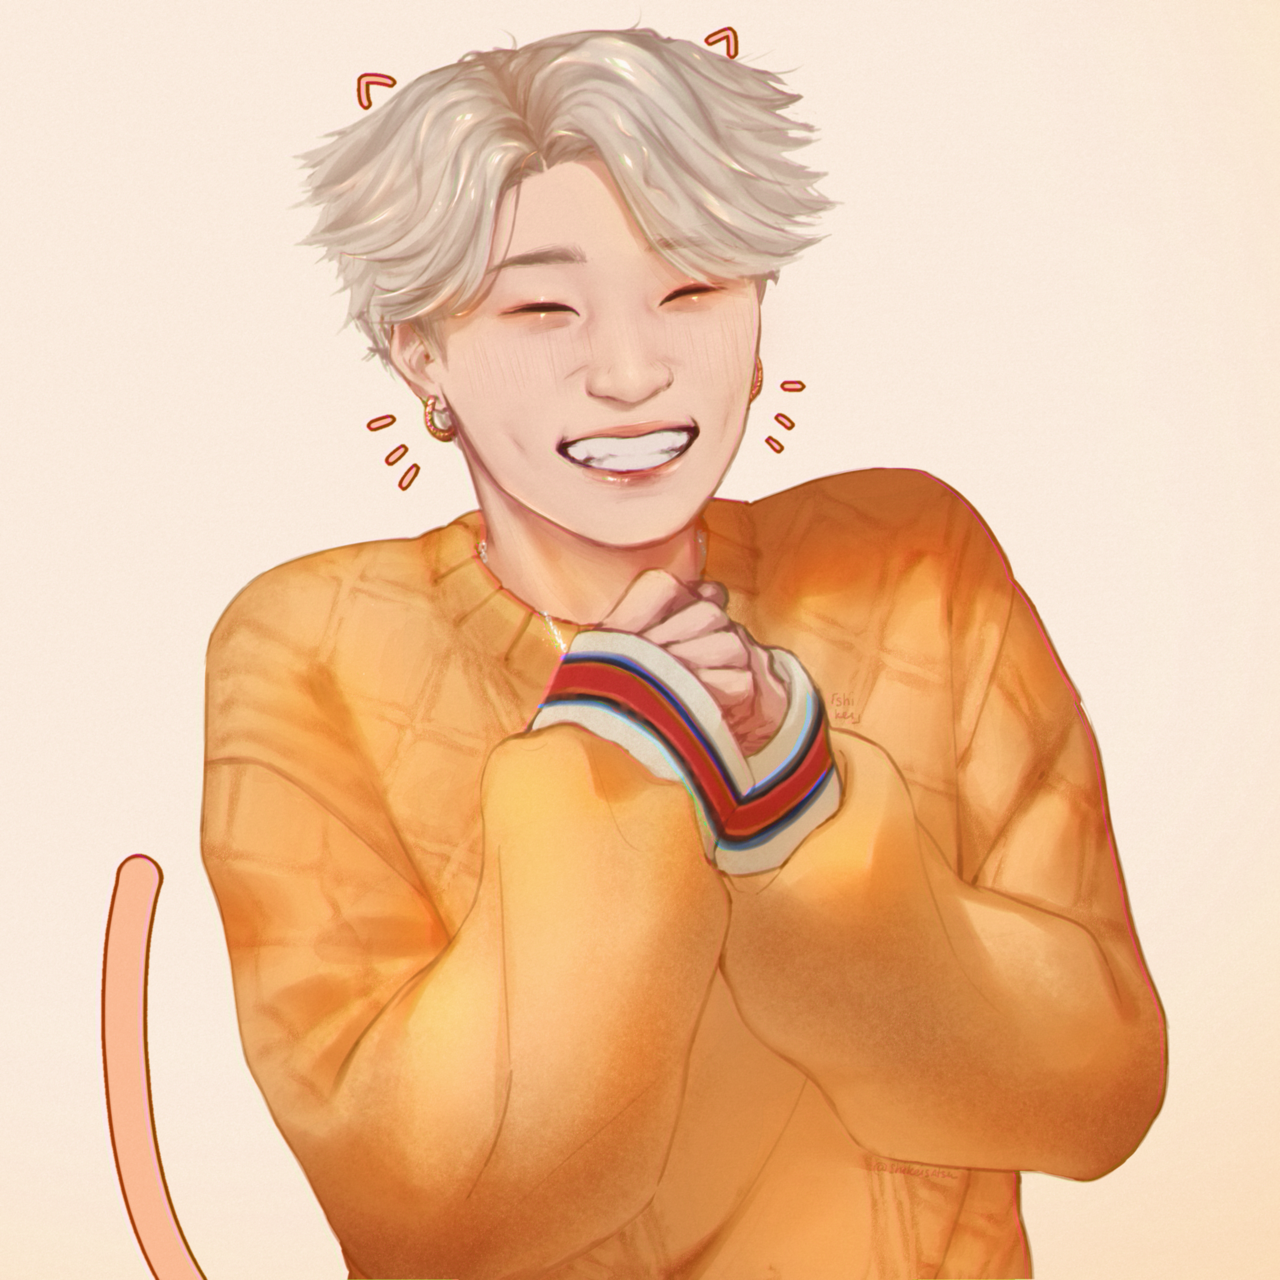 Pin By On Ateez In 2020 Kpop Drawings Kpop Fanart Cute Drawings